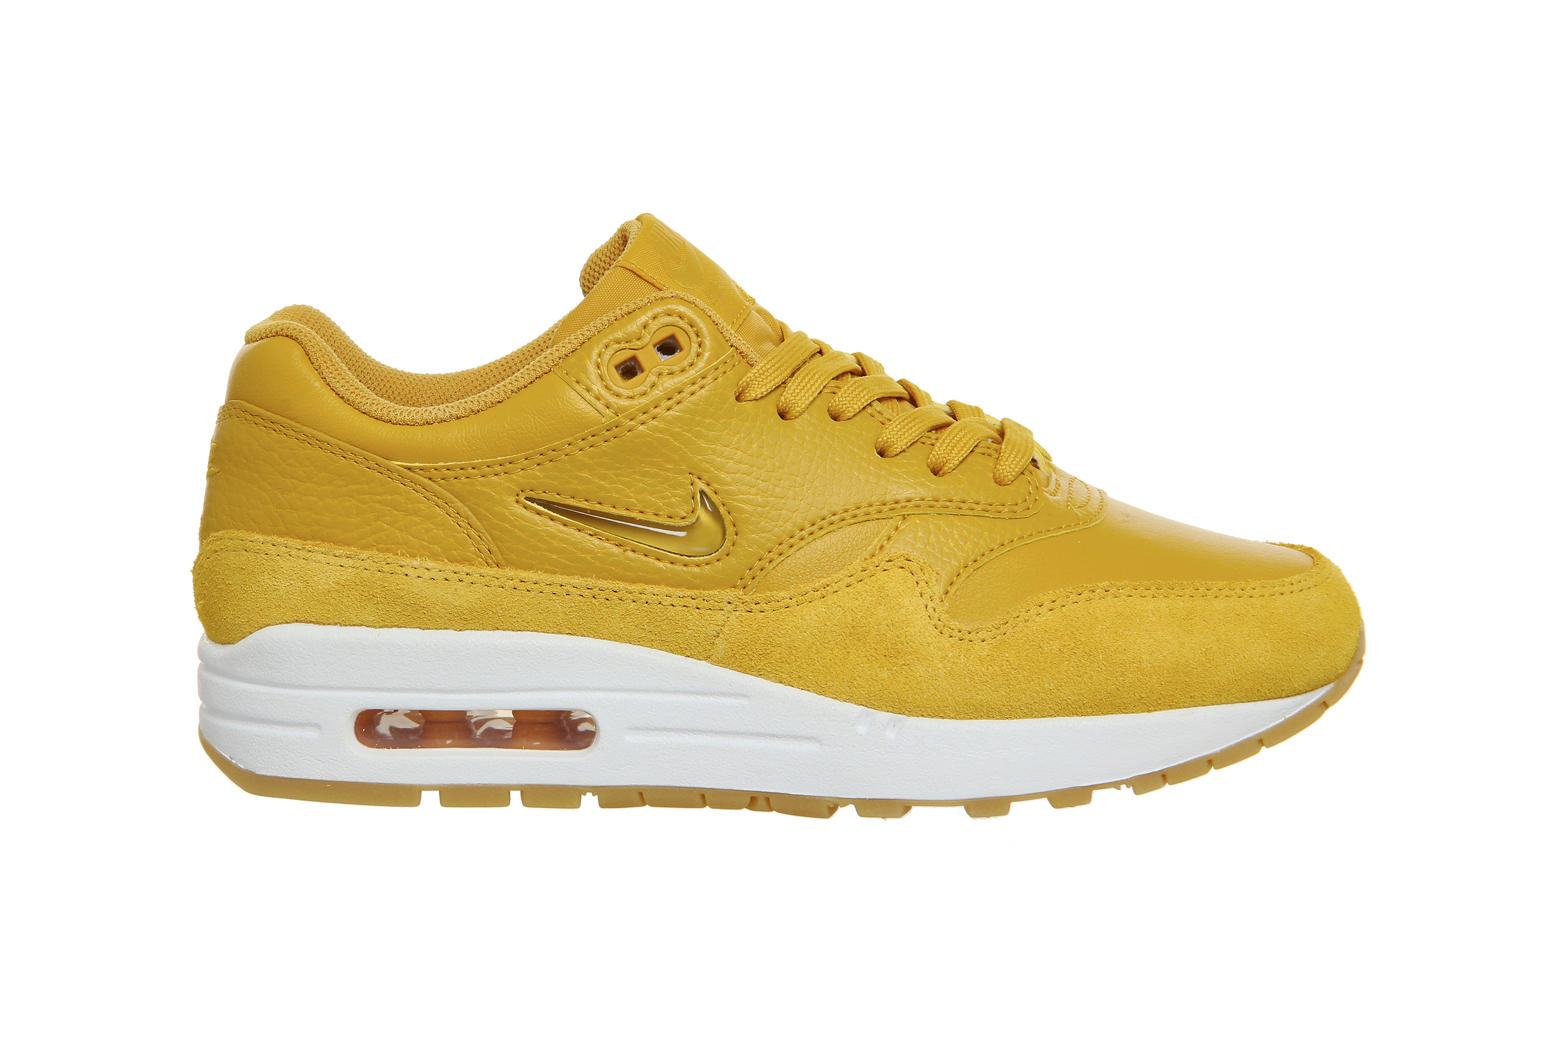 nike air max office. Nike Air Max 1 Jewel Mineral Yellow Golden Womens Sneakers Where To Buy Office A